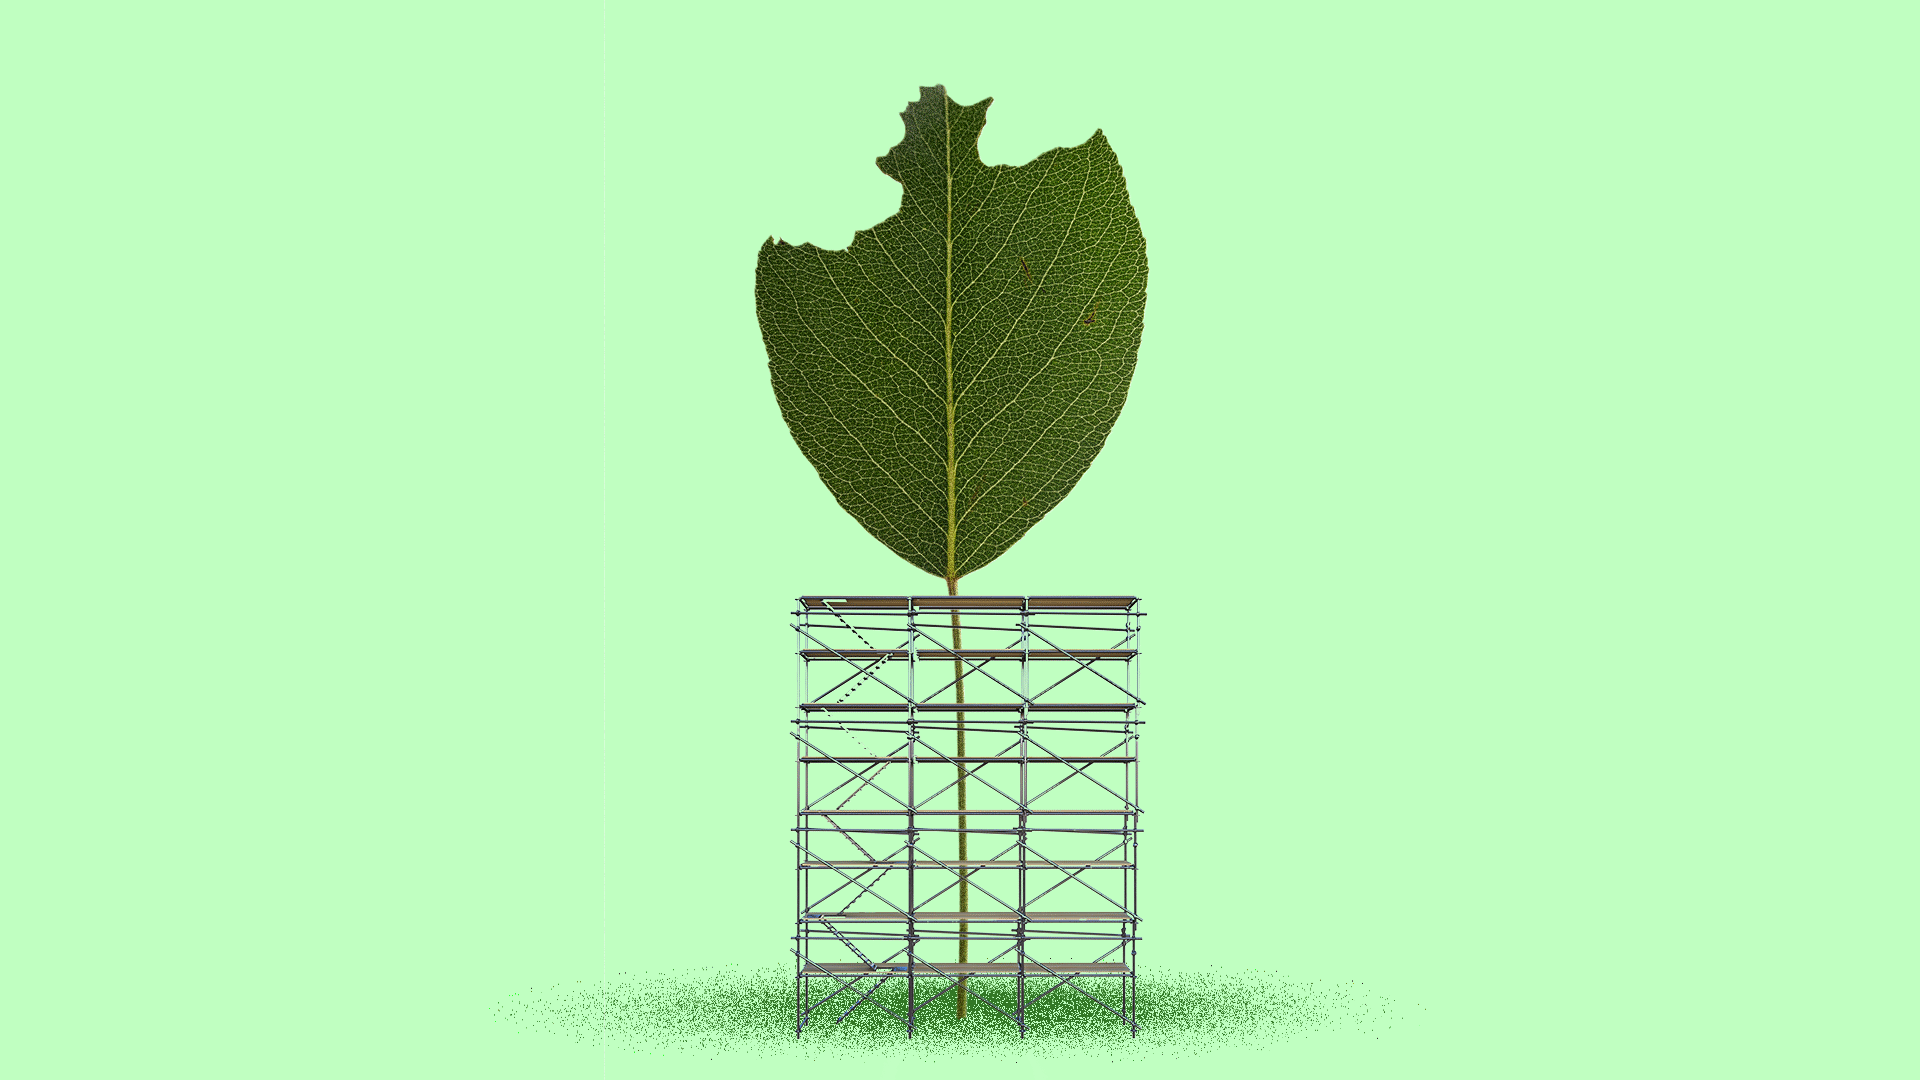 Illustration of a damaged leaf with scaffolding around it